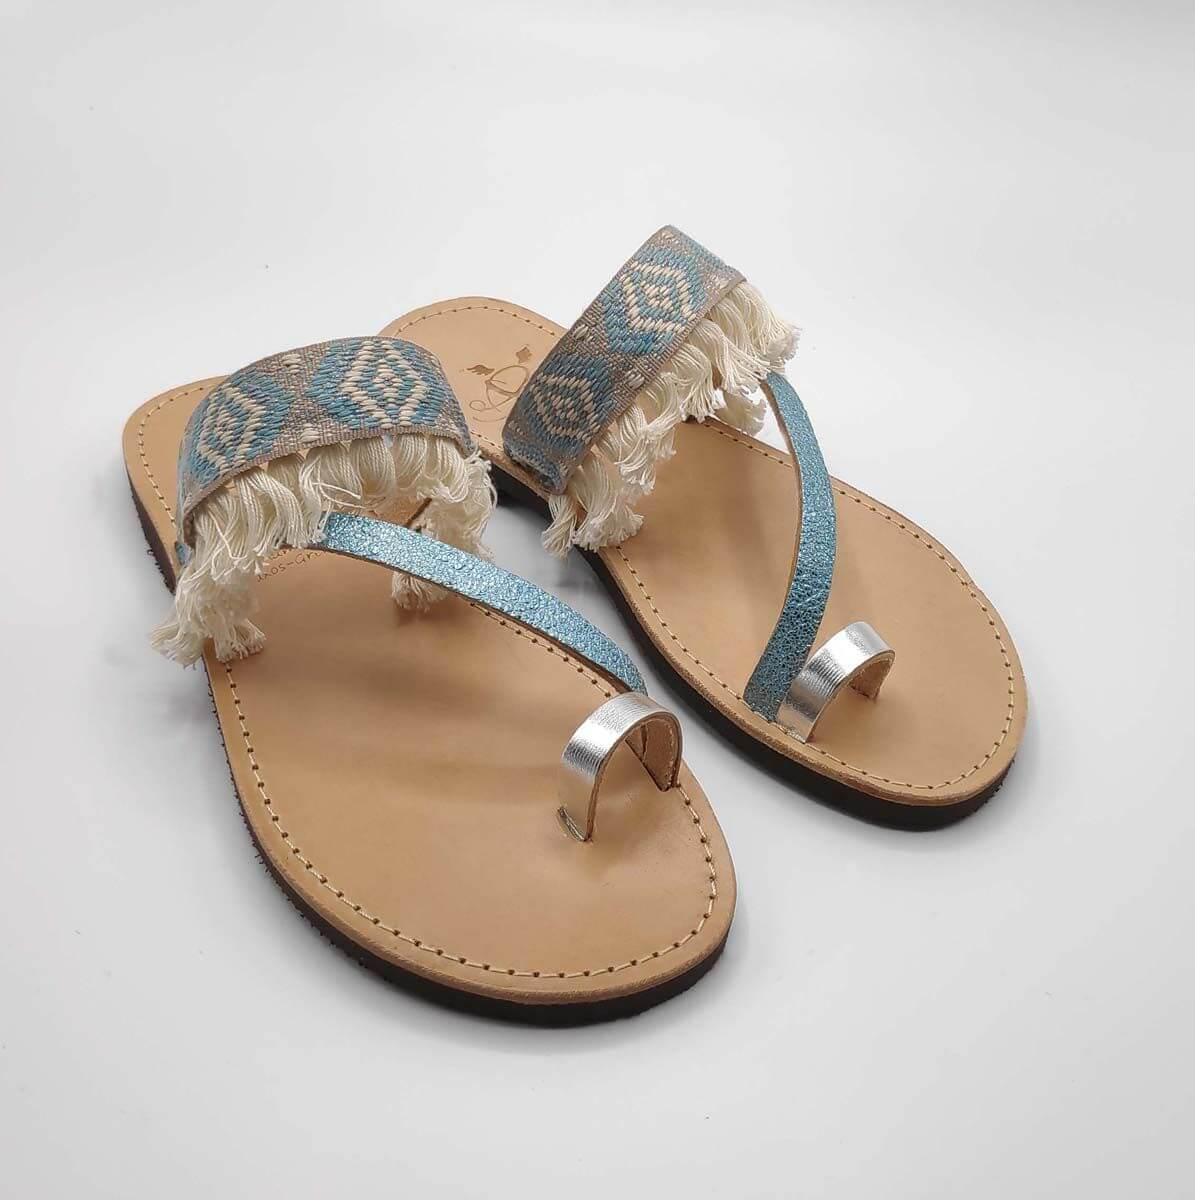 Pirgi slide - leather handmade embellished sandal with three thin front straps and toe